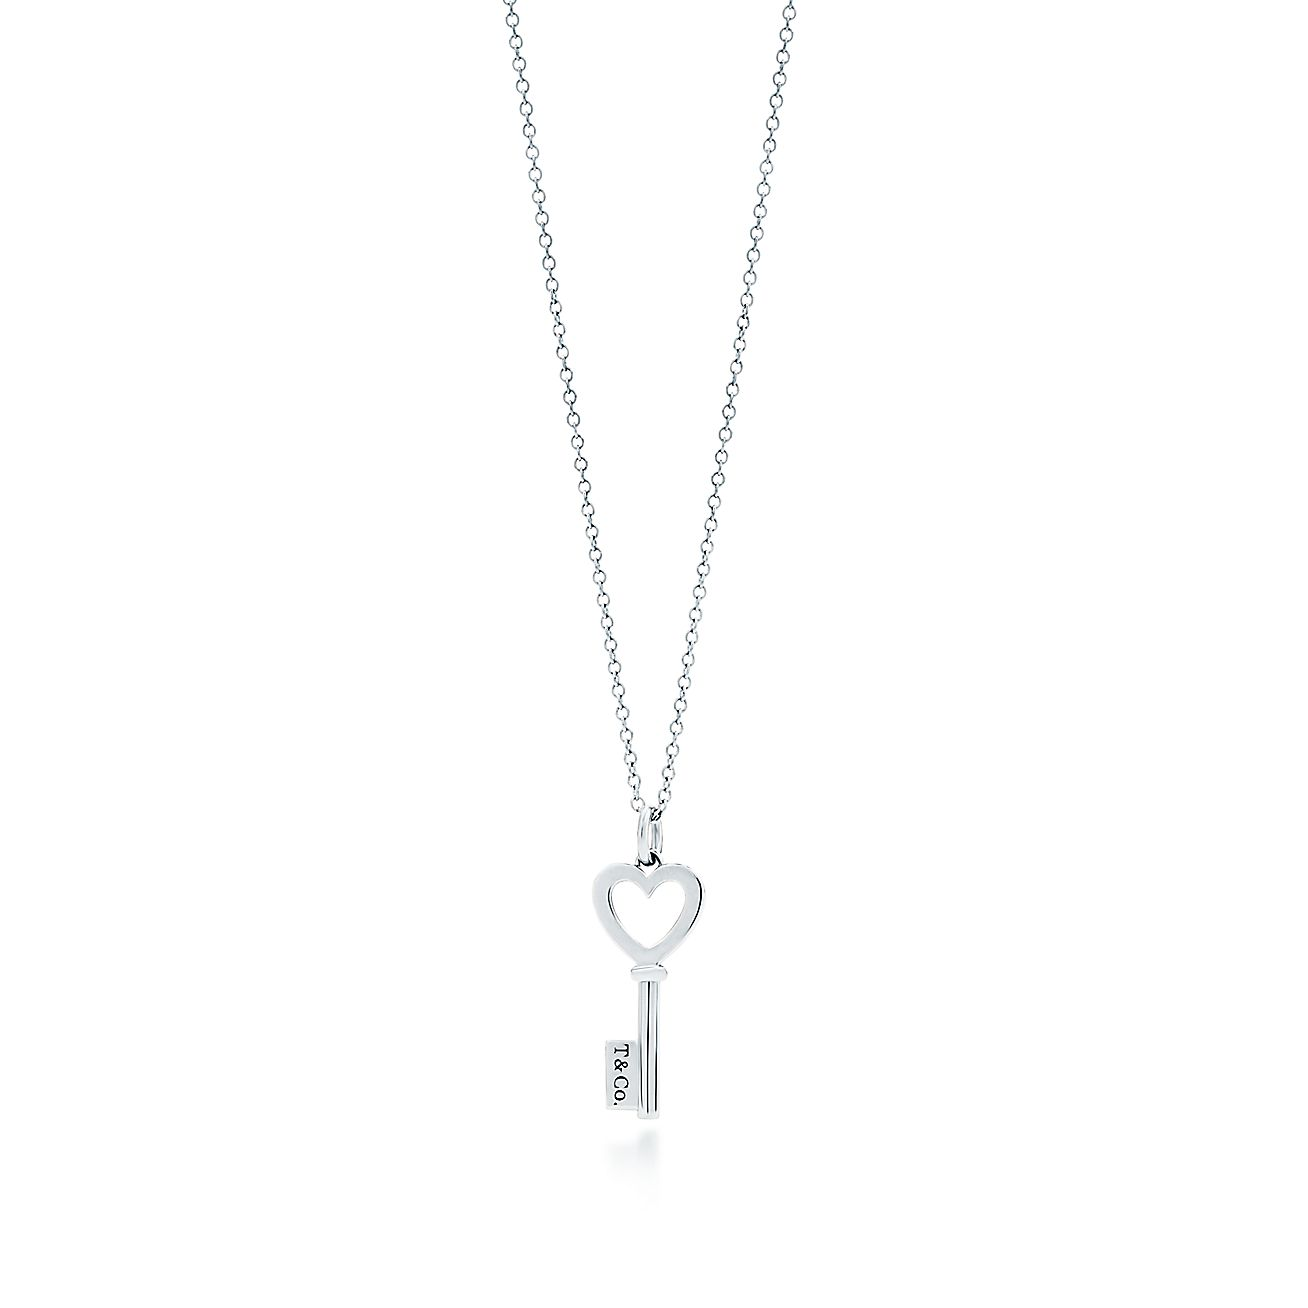 Tiffany keys heart key pendant in sterling silver mini tiffany tiffany keys heart key pendant in sterling silver mini tiffany co aloadofball Gallery